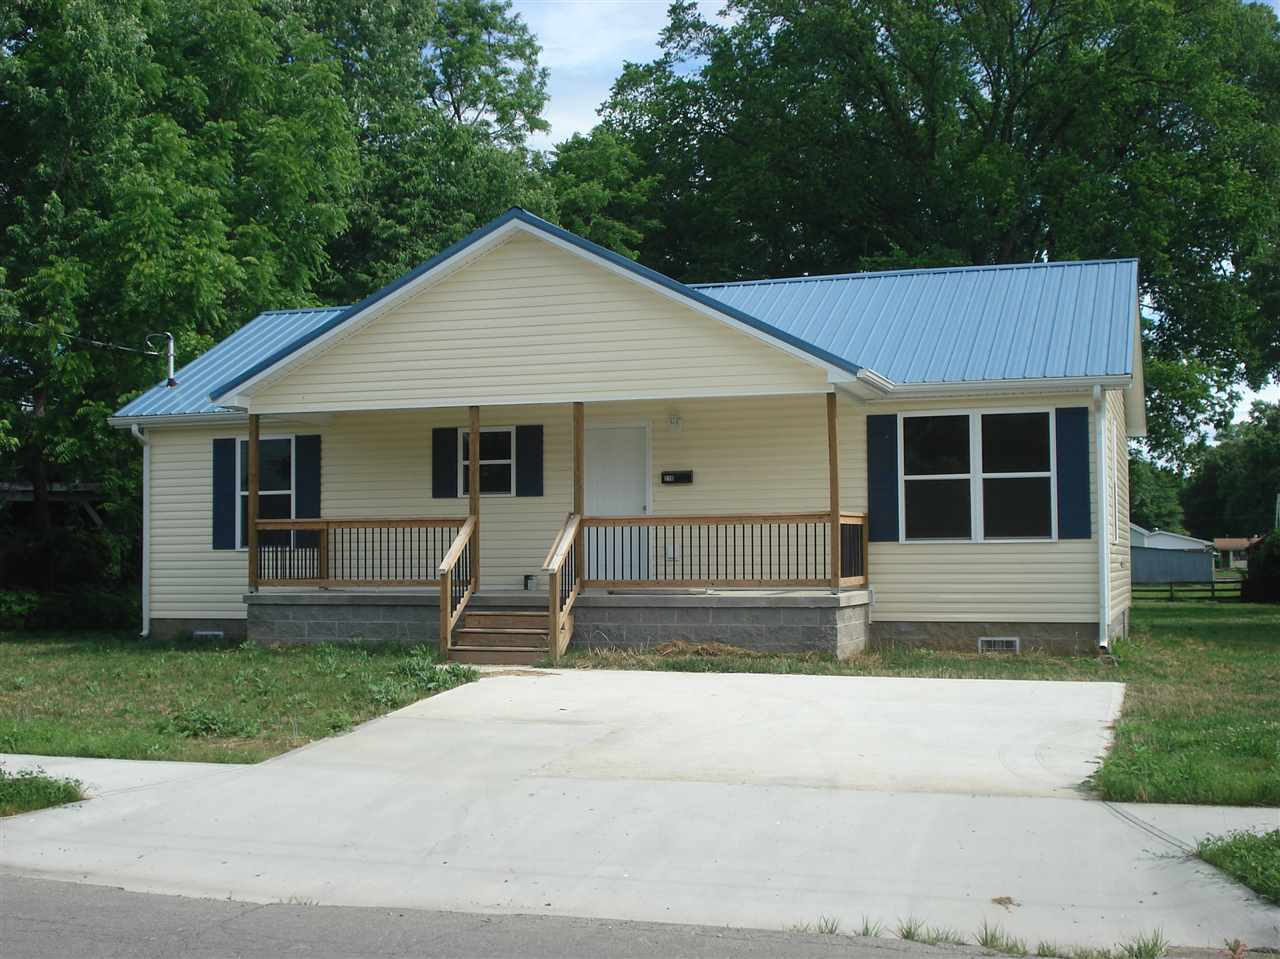 Photo 1 for 210 W Mill St Cynthiana, KY 41031